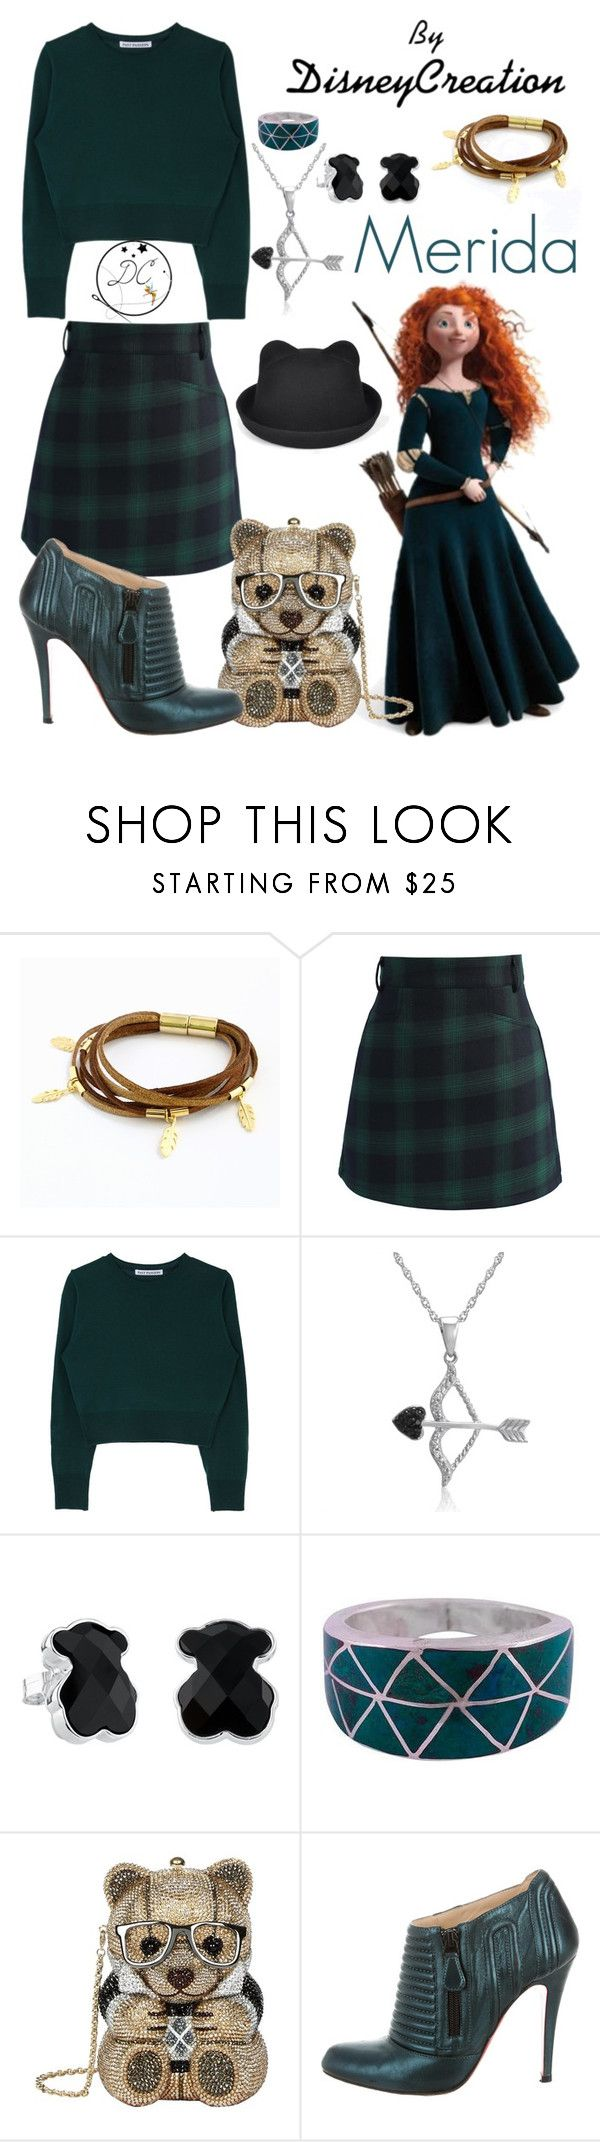 """""""Merida - By DisneyCreation"""" by disneycreation ❤ liked on Polyvore featuring Merida, Chicwish, Amanda Rose Collection, TOUS, NOVICA, Judith Leiber and Christian Louboutin"""